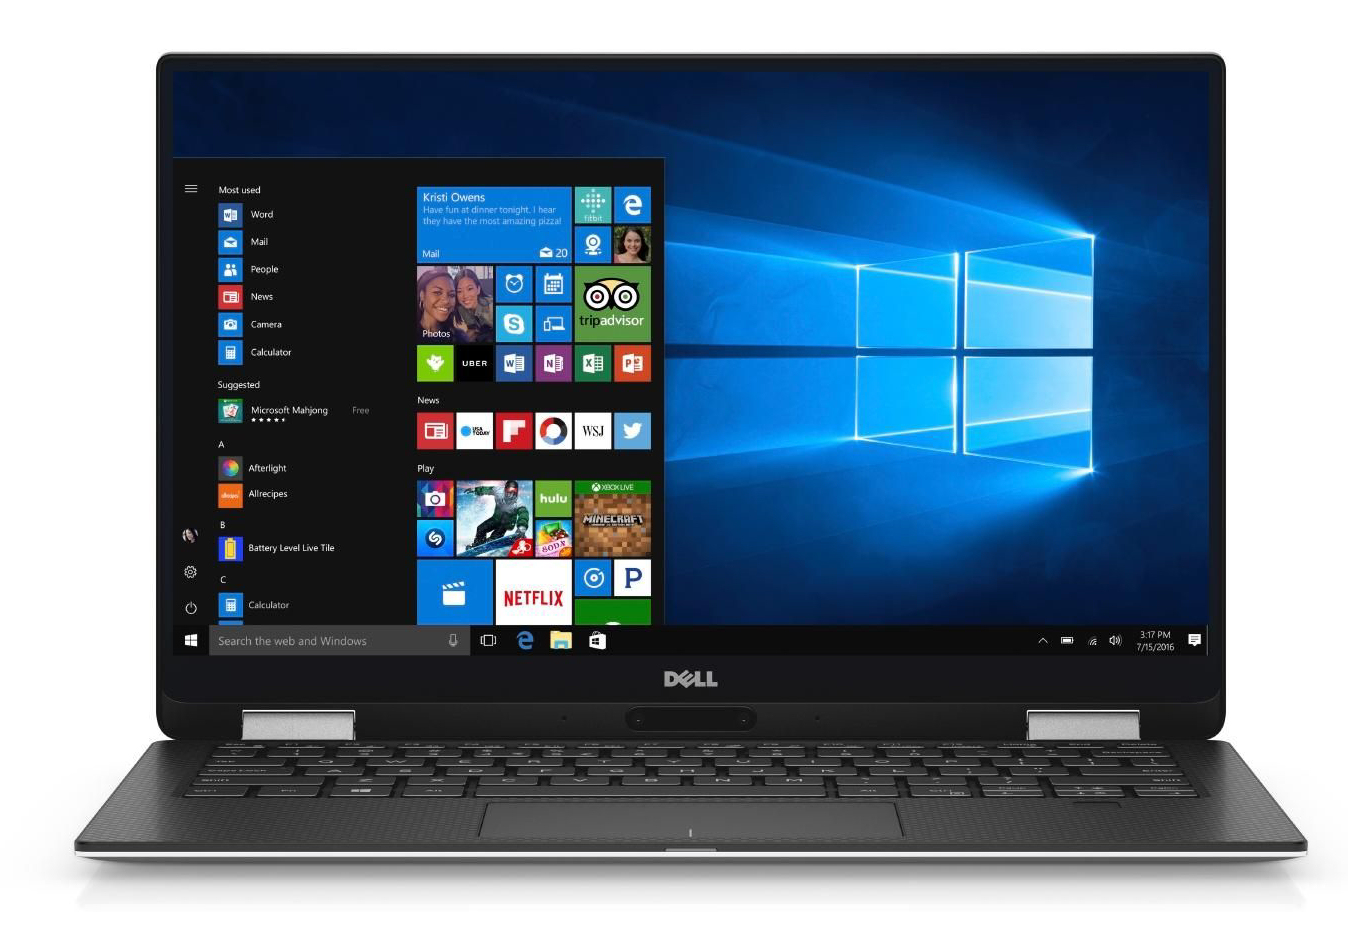 Dell XPS 13 9365 (7Y54, QHD+) Convertible Review - NotebookCheck.net Reviews